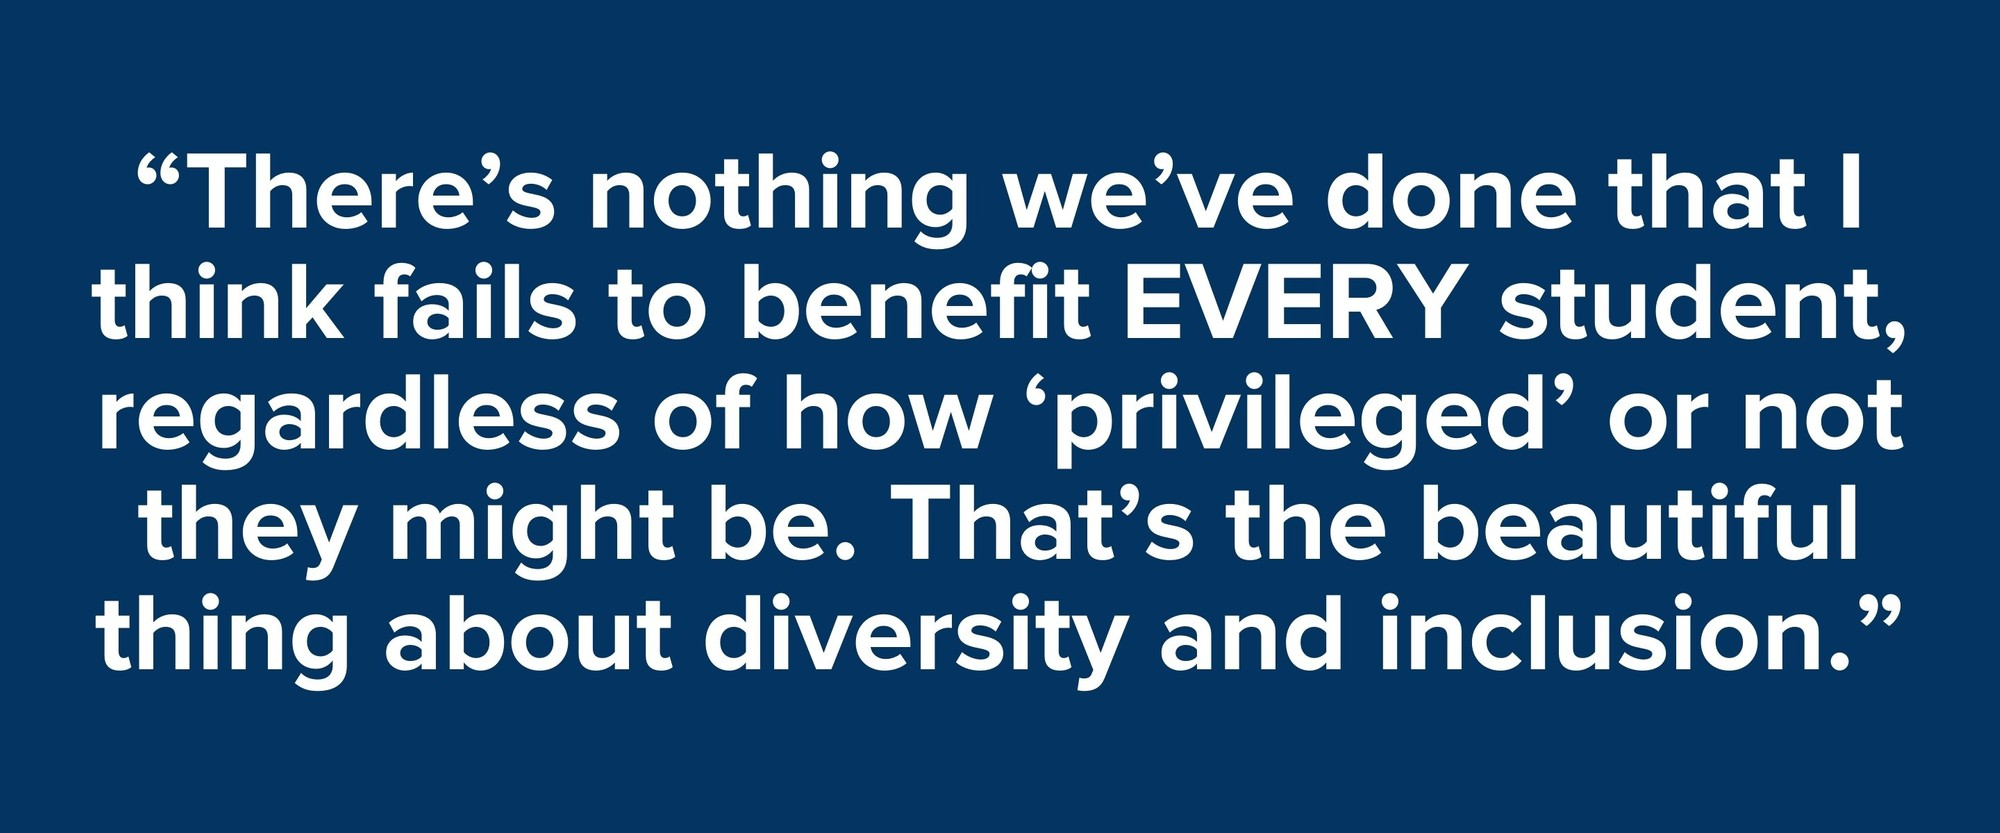 """""""There's nothing we've done that I think fails to benefit EVERY student, regardless of how 'privileged' or not they might be. That's the beautiful thing about diversity and inclusion."""""""